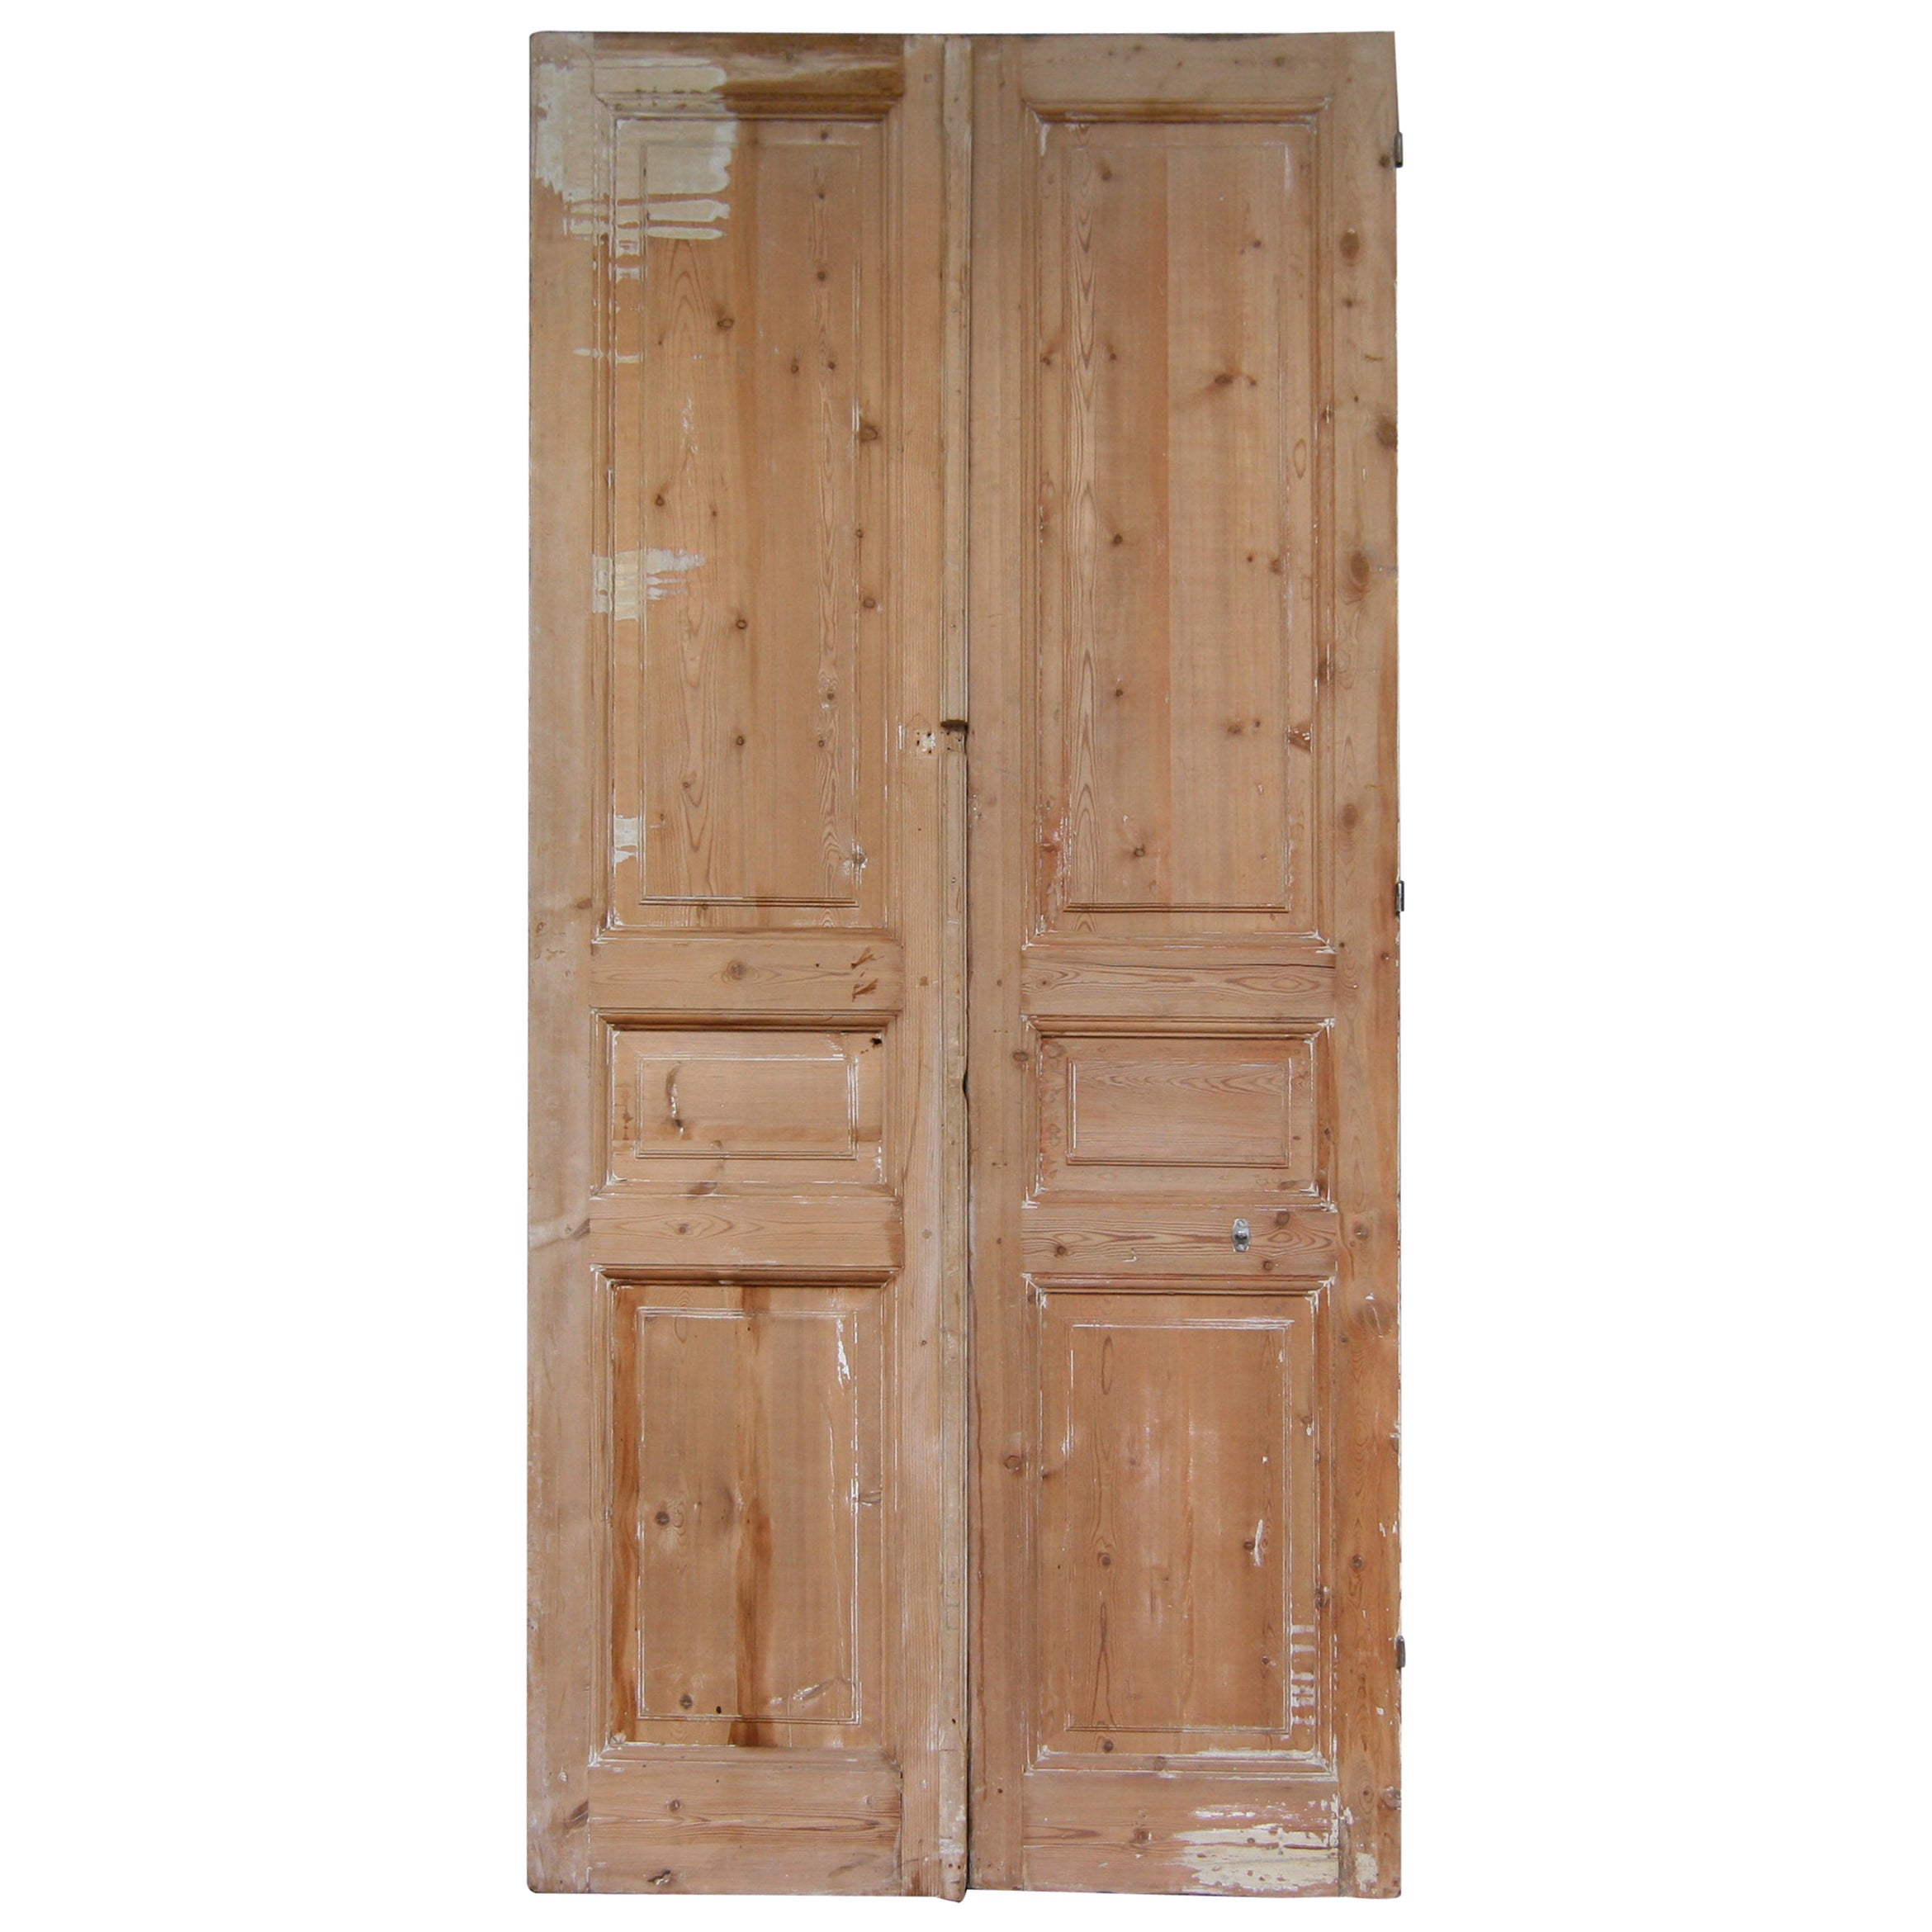 Late 19th Century French Double Door Made of Pine